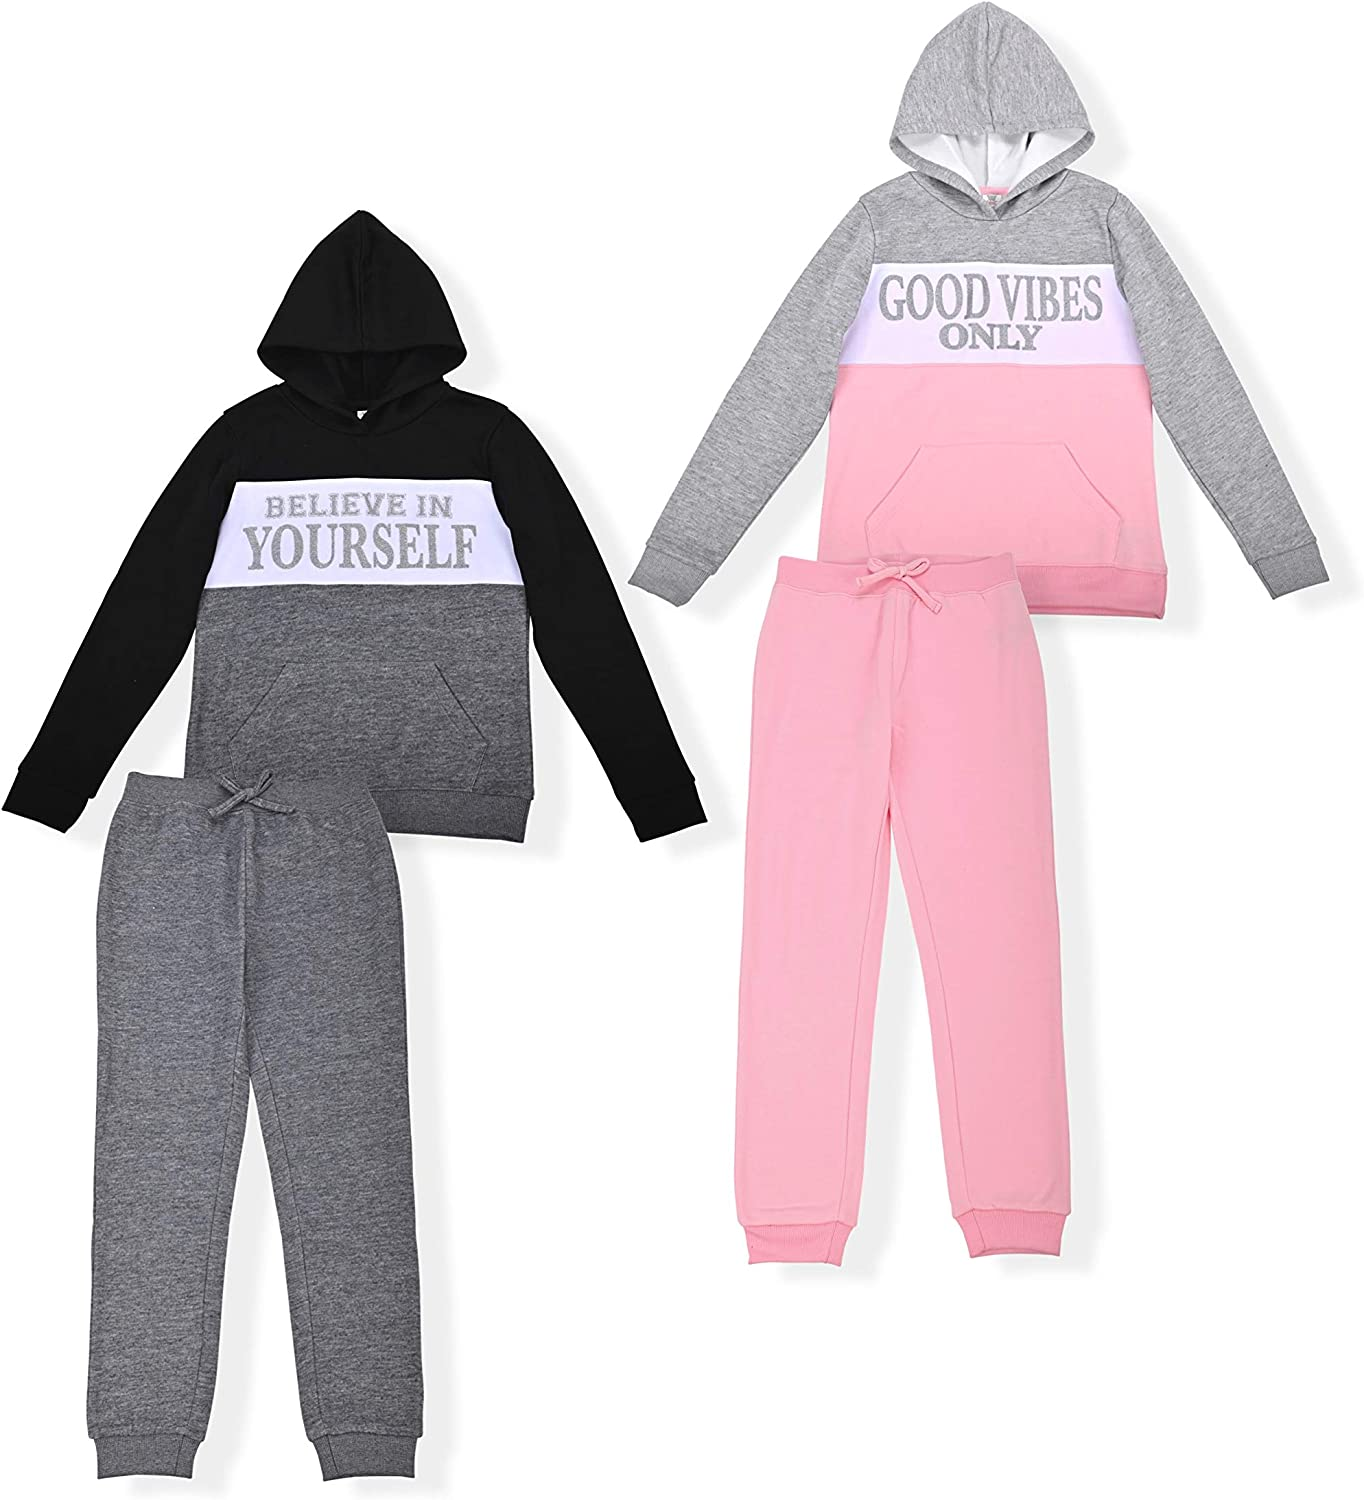 Star Ride Girls 4-Piece Fleece Active Hoodie and Athletic Jogger Sweatpants and Sweatshirt Kids Clothing Set